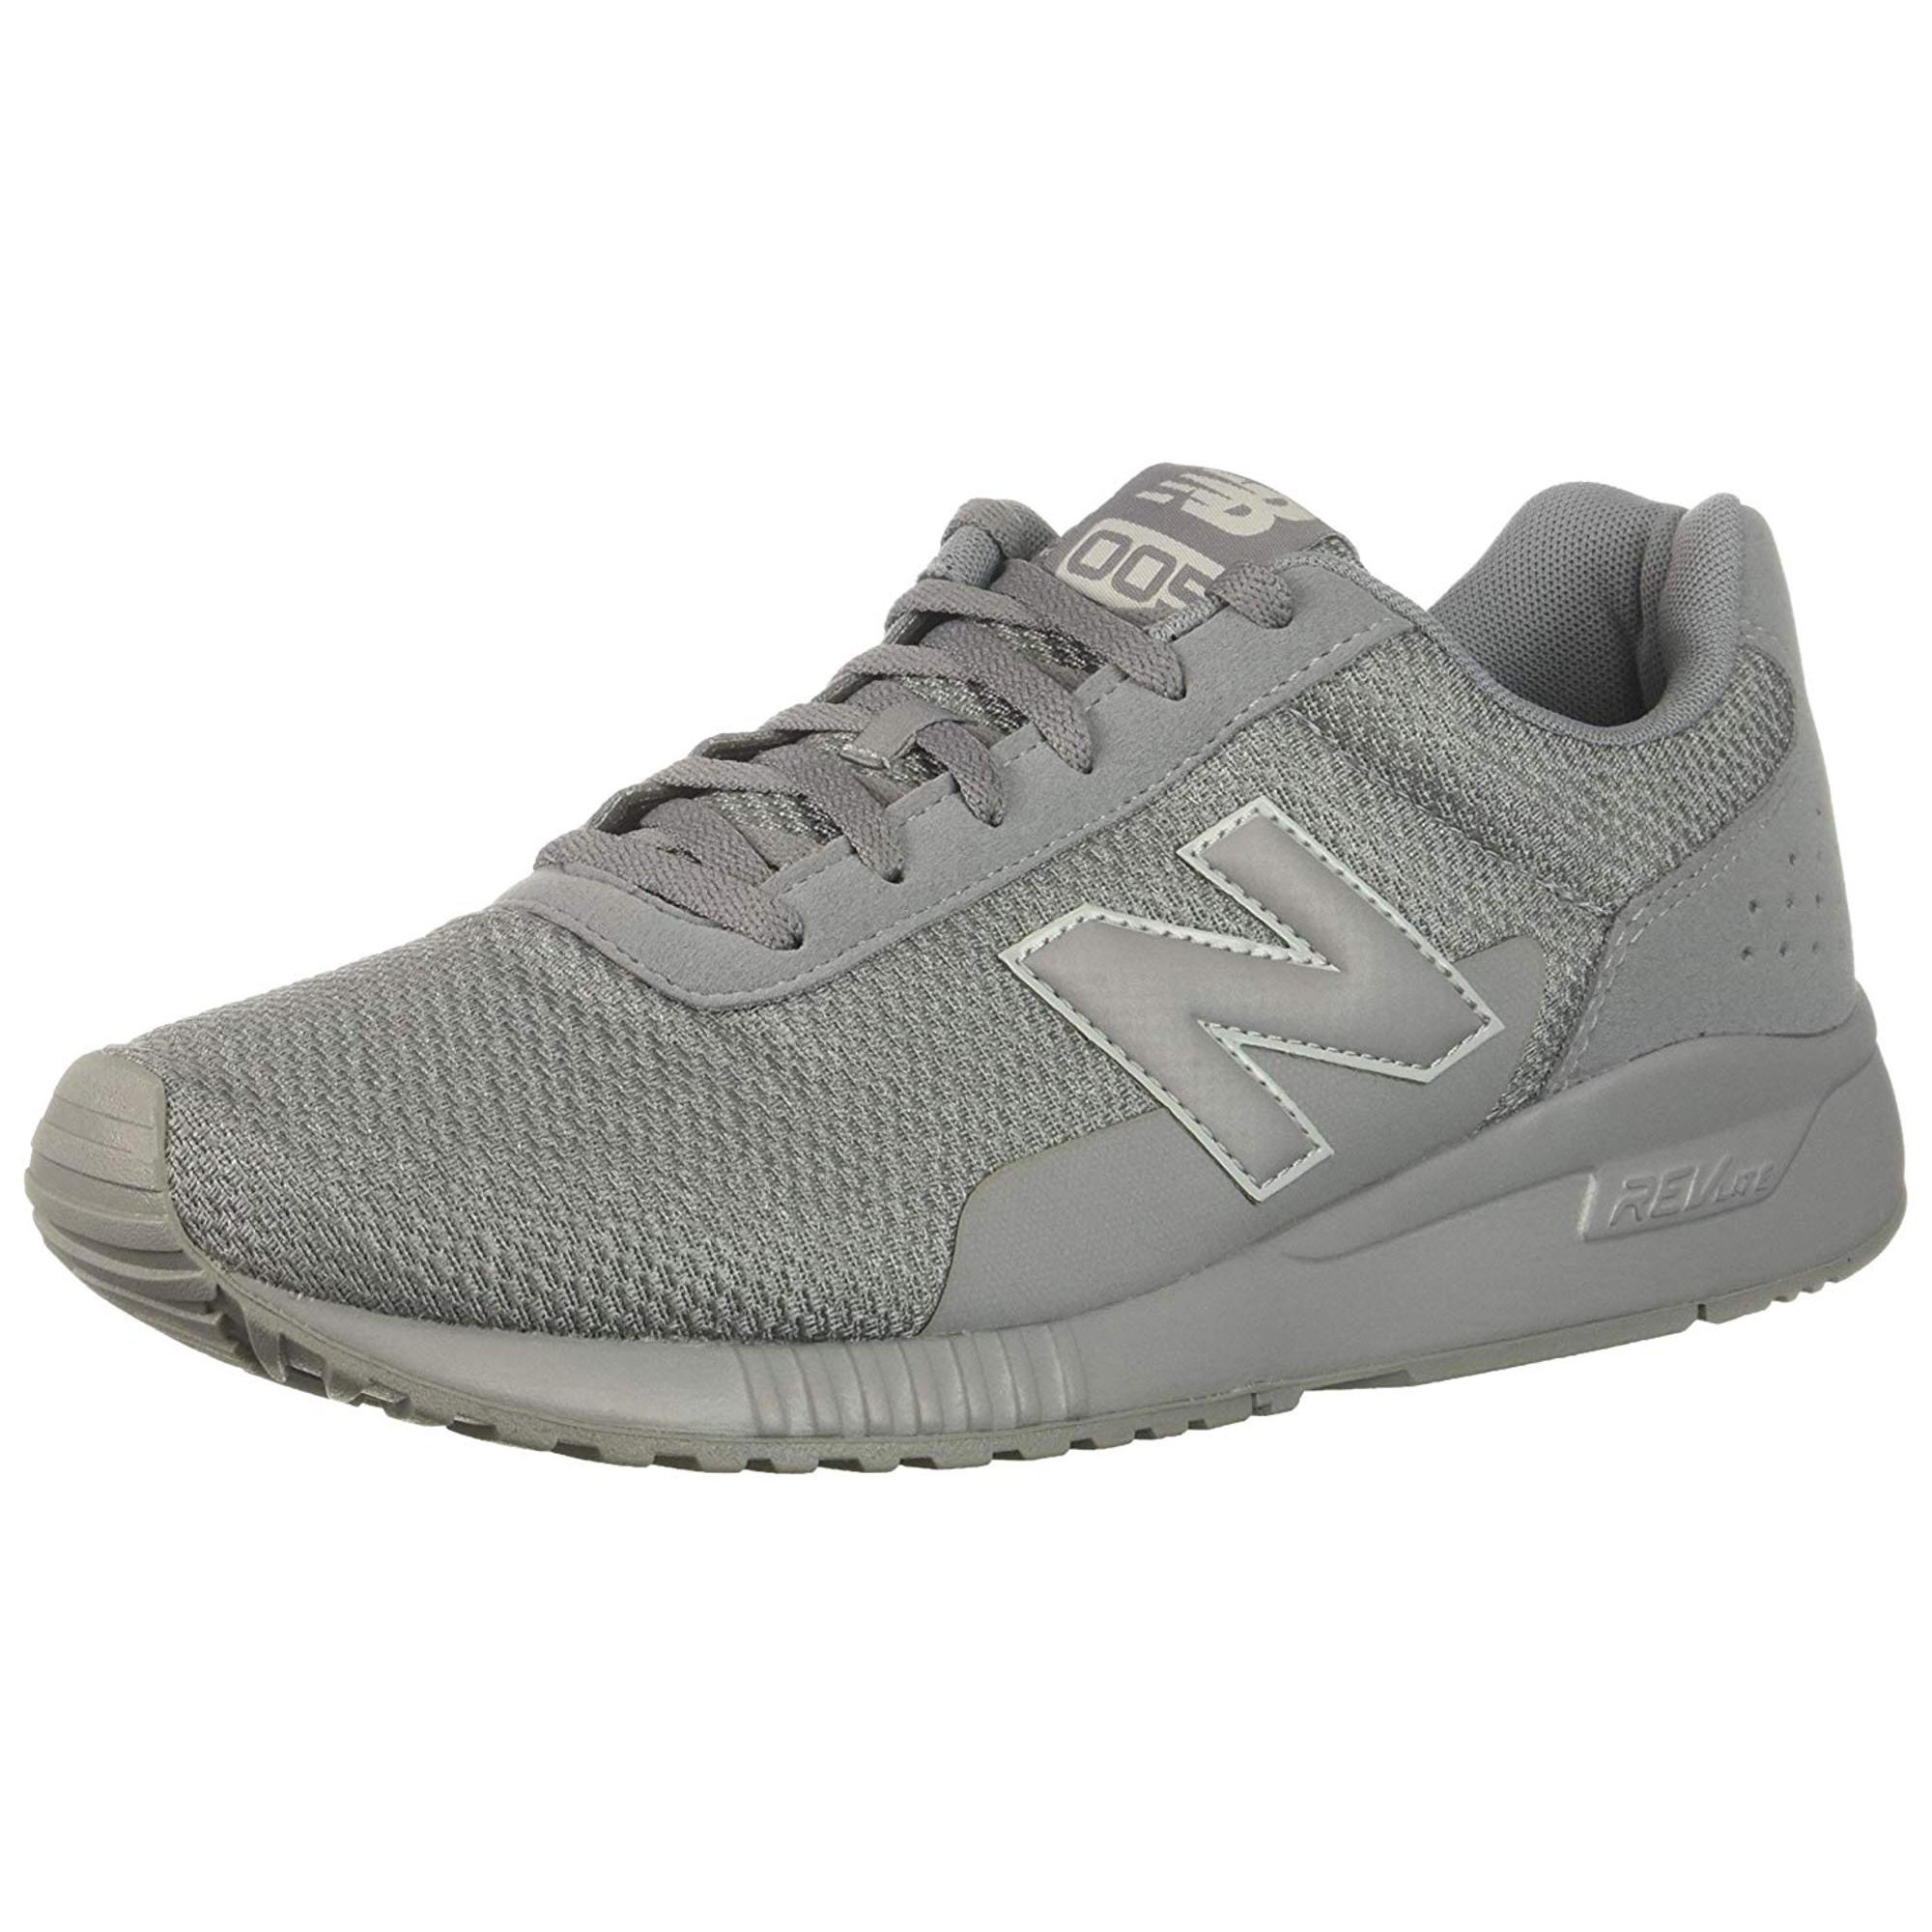 New Balance Mens 005 V2 Low Top Lace Up Fashion Sneakers